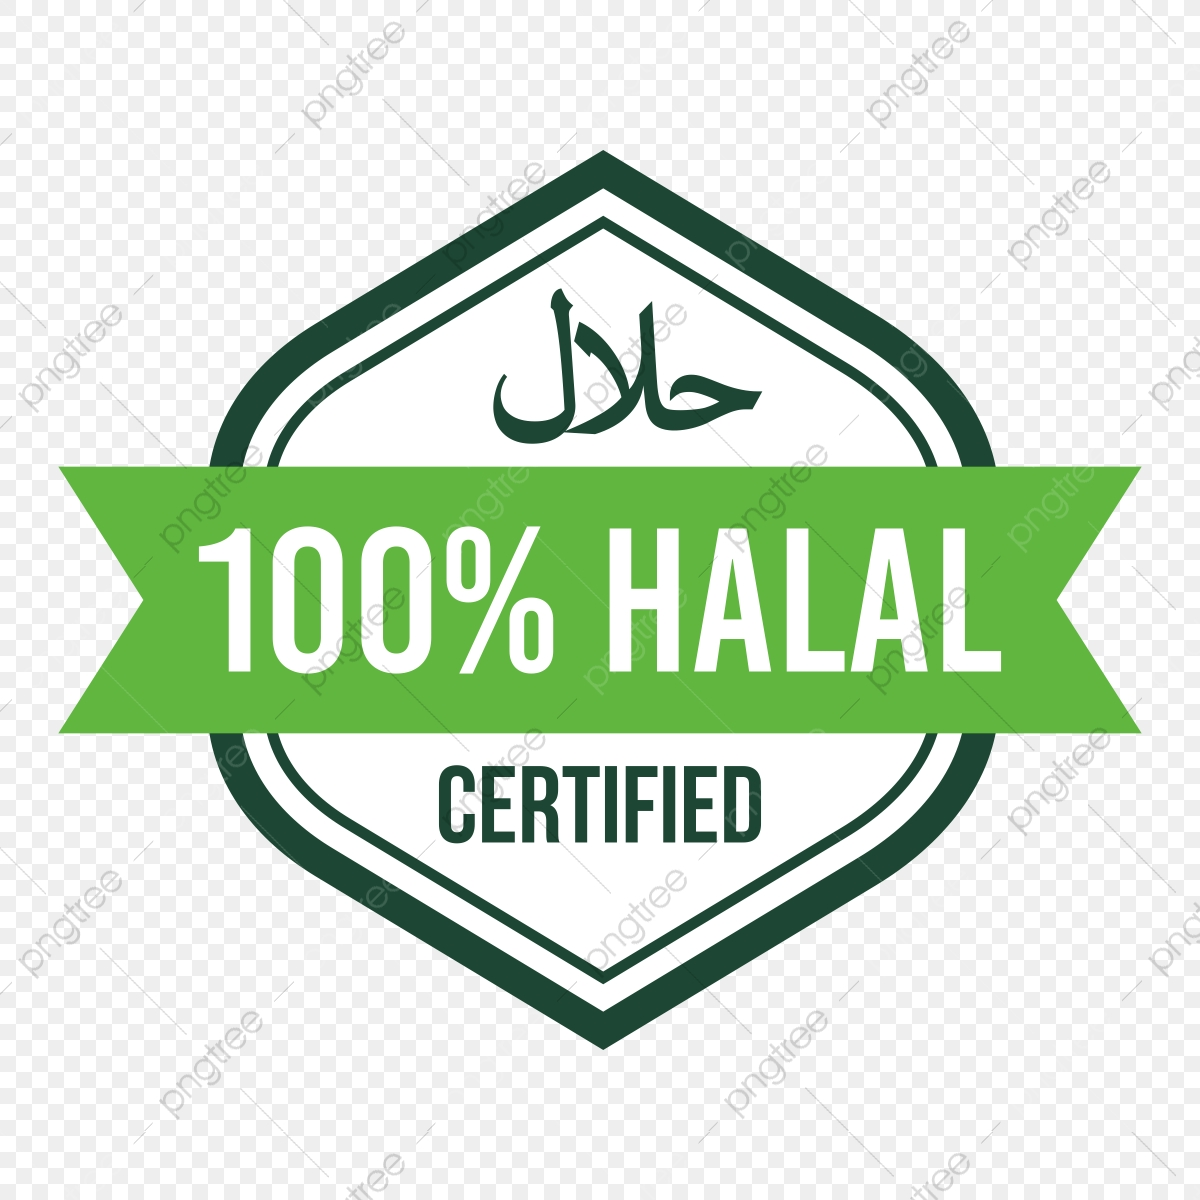 Halal Logo Png Vector Psd And Clipart With Transparent Background For Free Download Pngtree